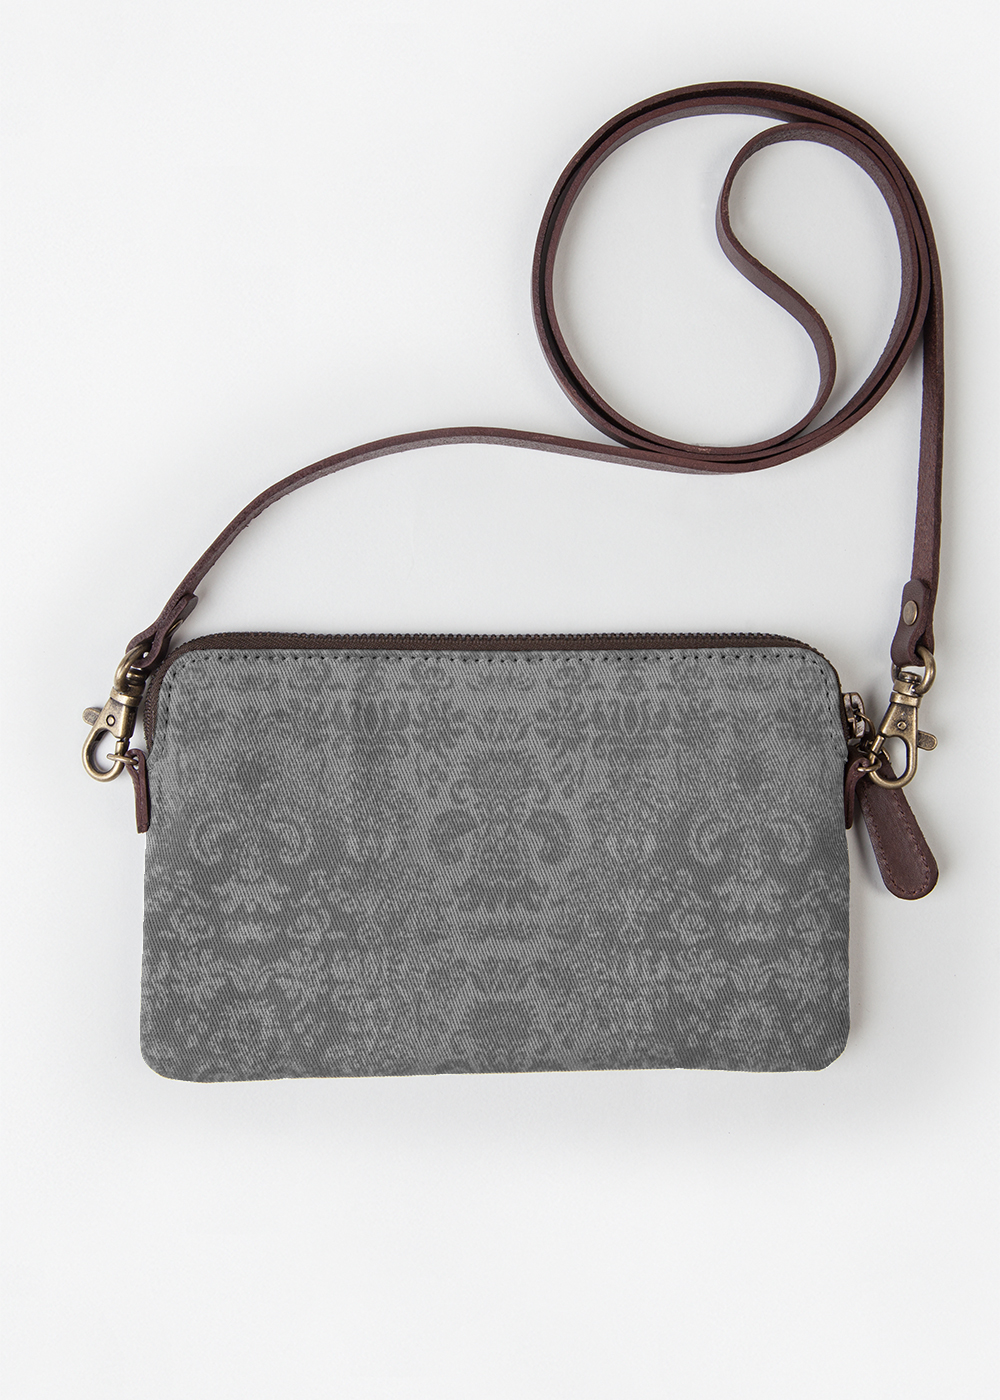 VIDA Statement Bag - &@ §?+§ Purse by VIDA 5fq0DJsRB